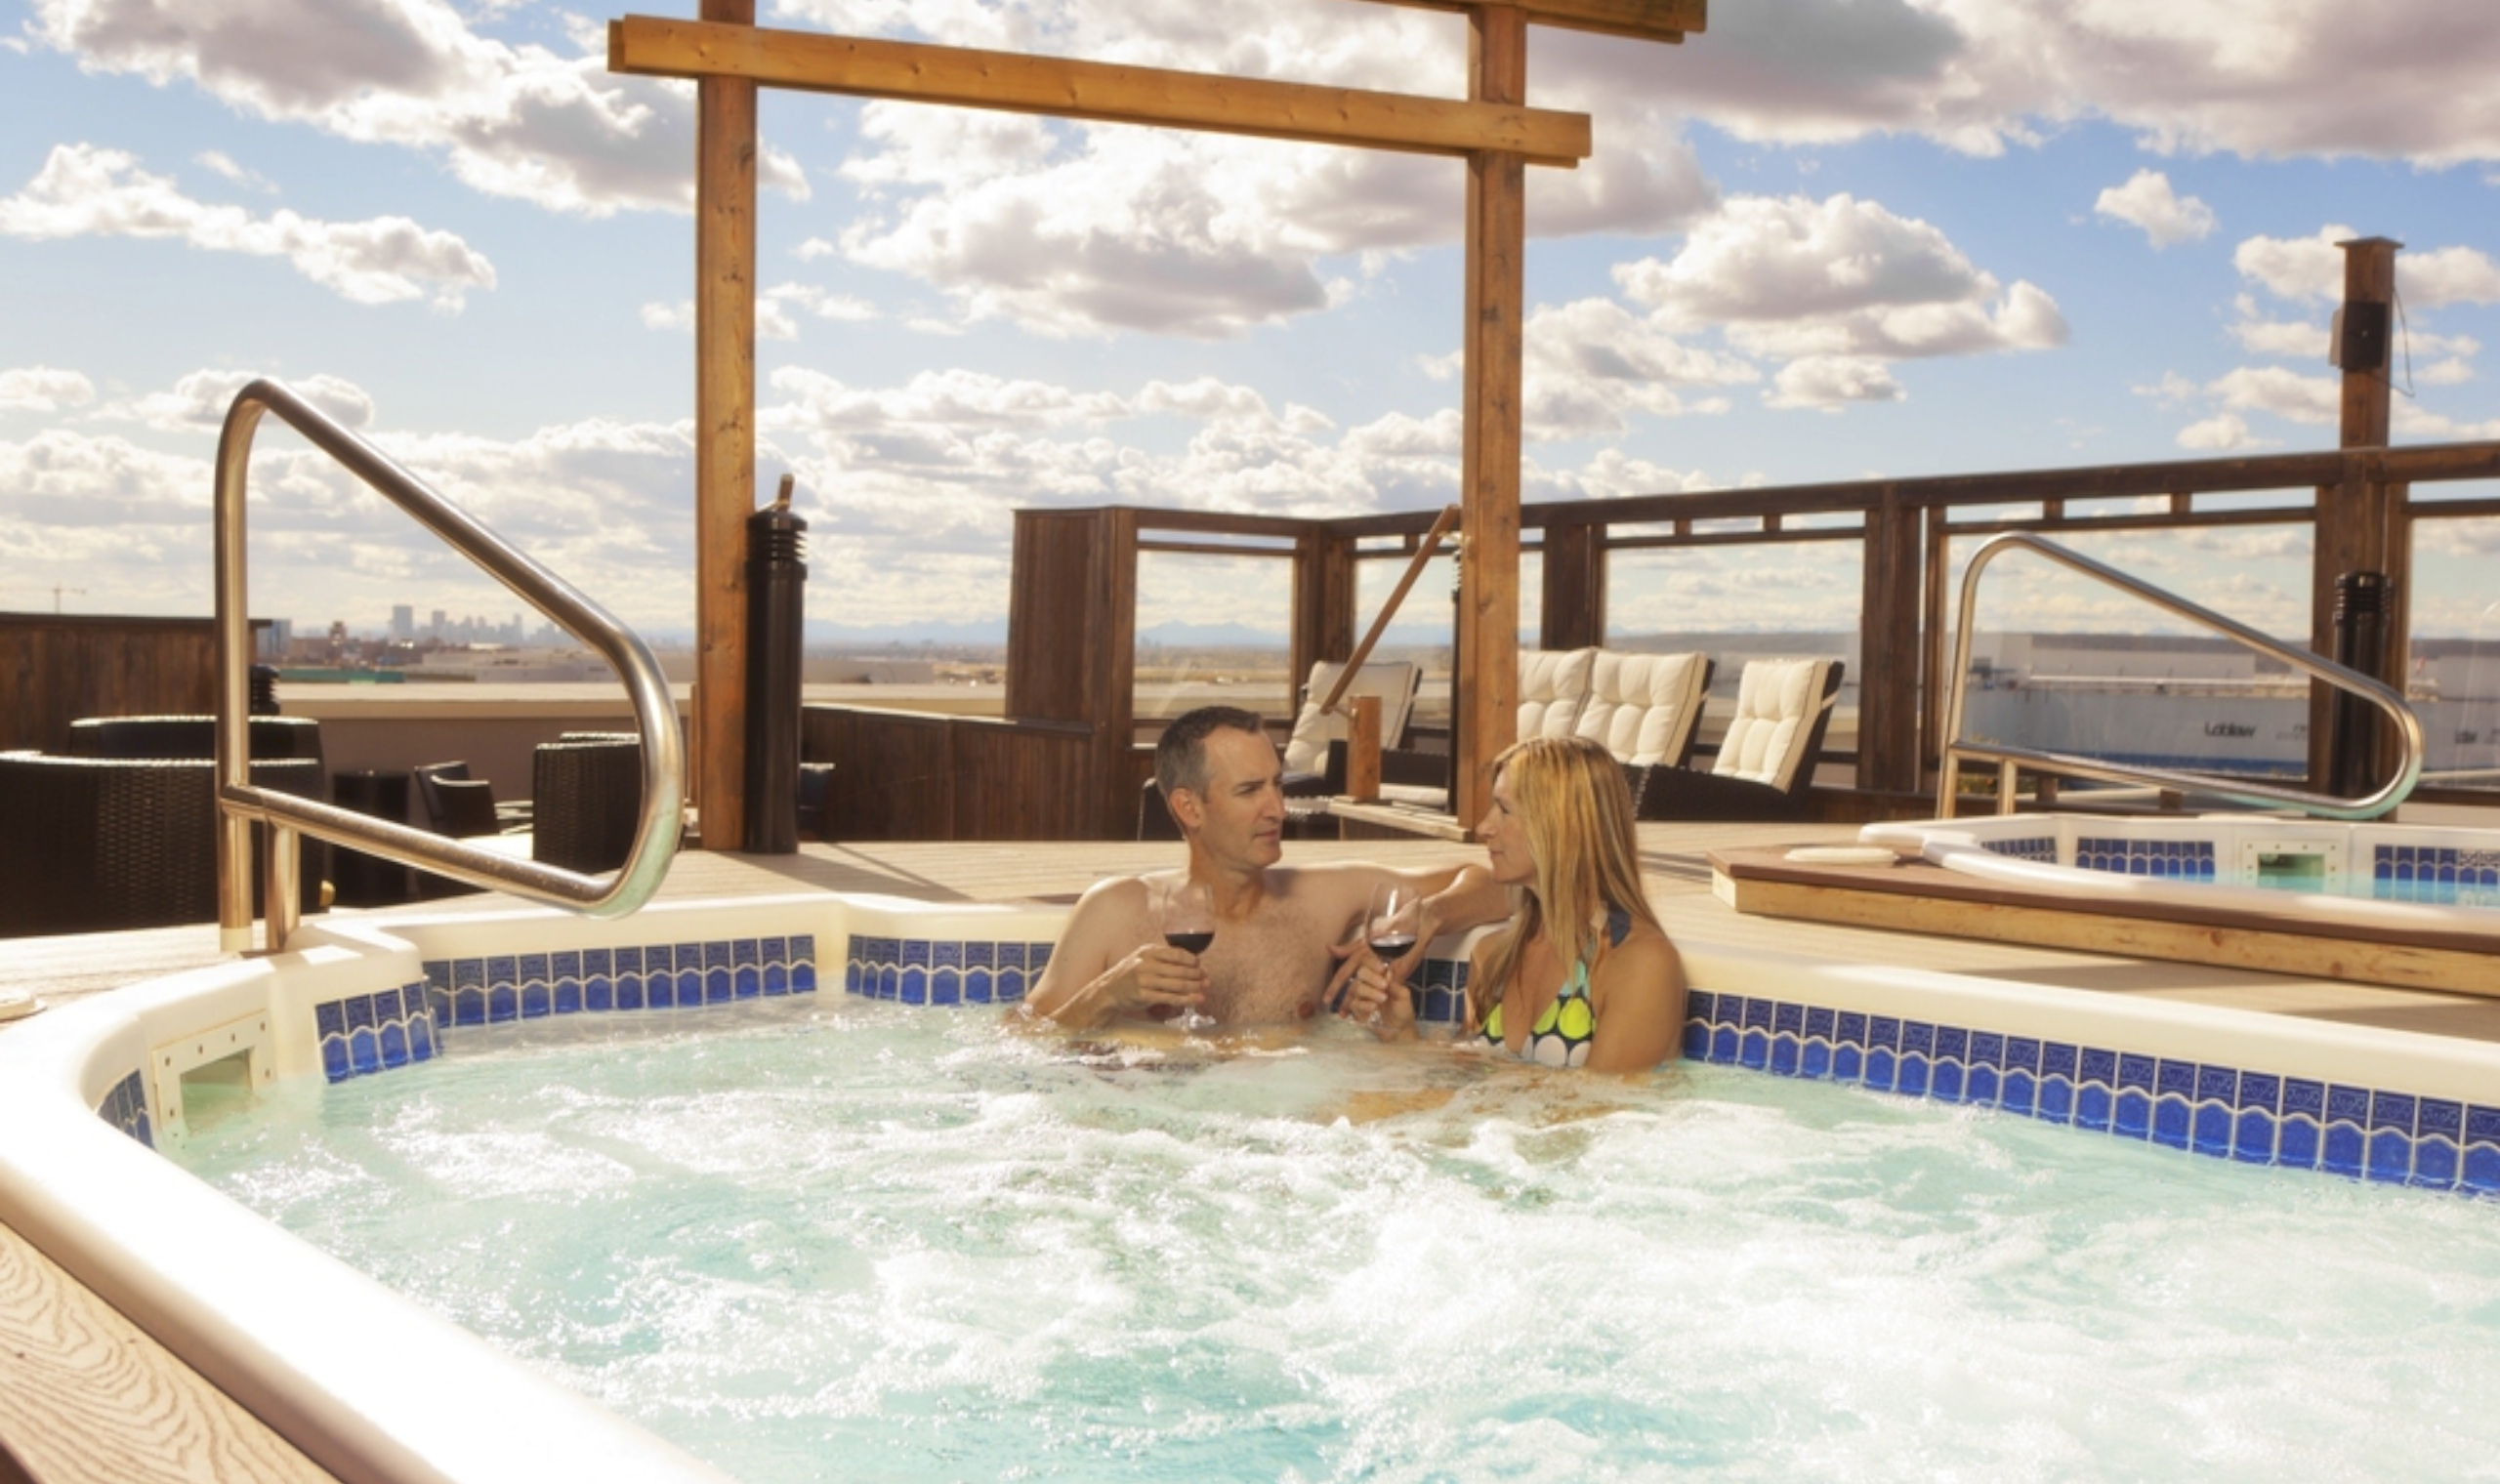 Hotels With Jacuzzi In Room Calgary